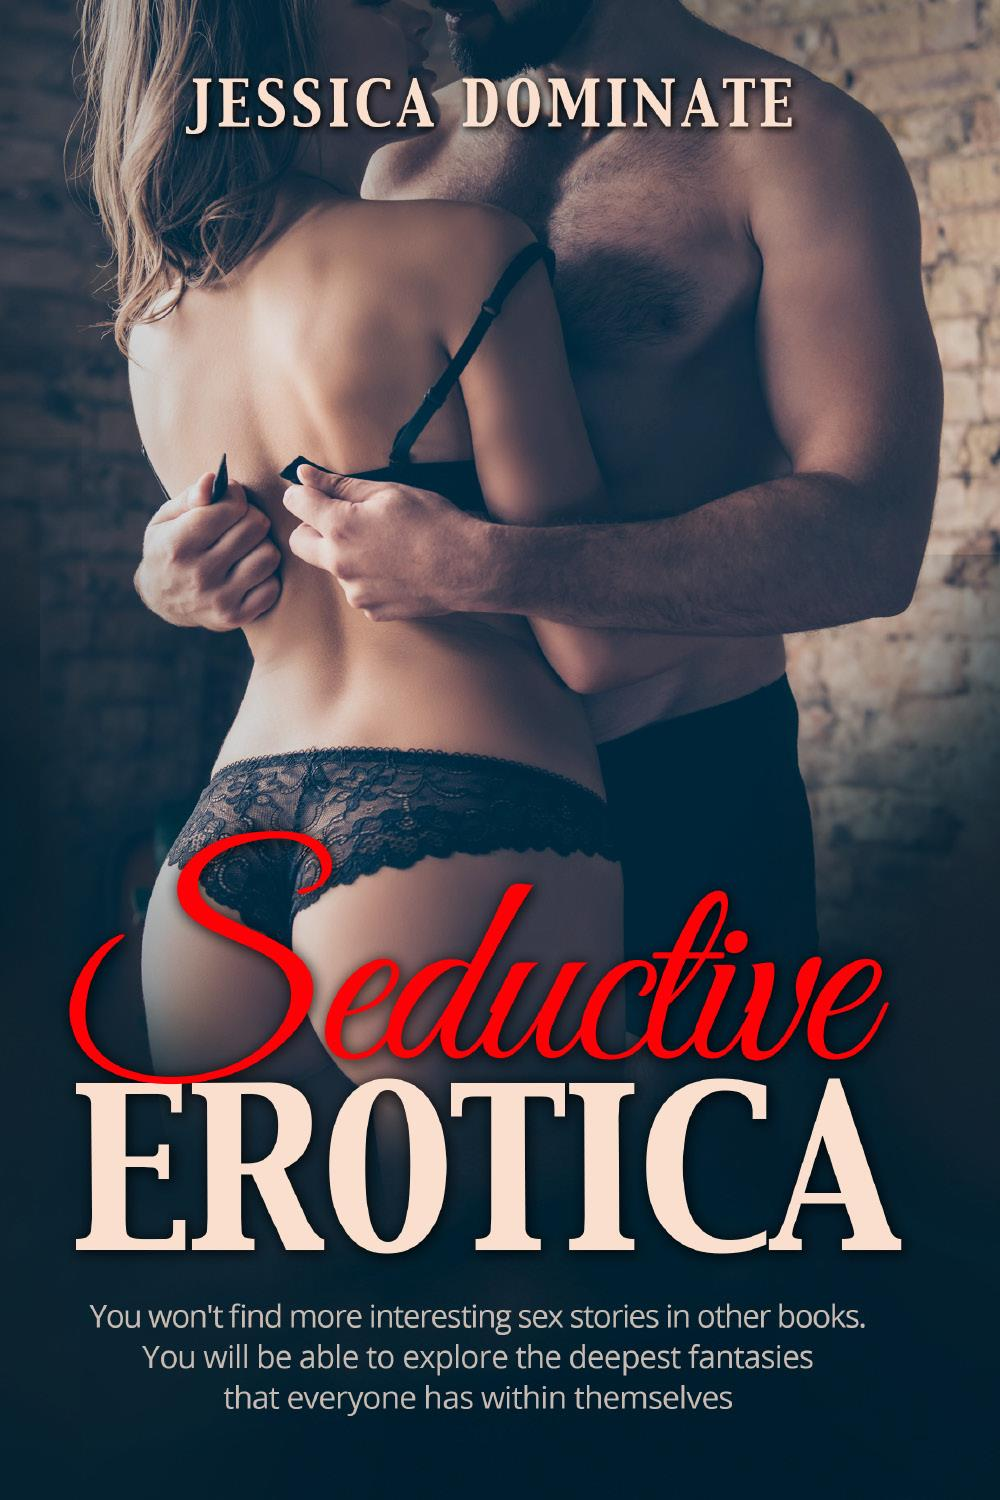 Seductive Erotica. You won't find more interesting sex stories in other books. You will be able to explore the deepest fantasies that everyone has within themselves